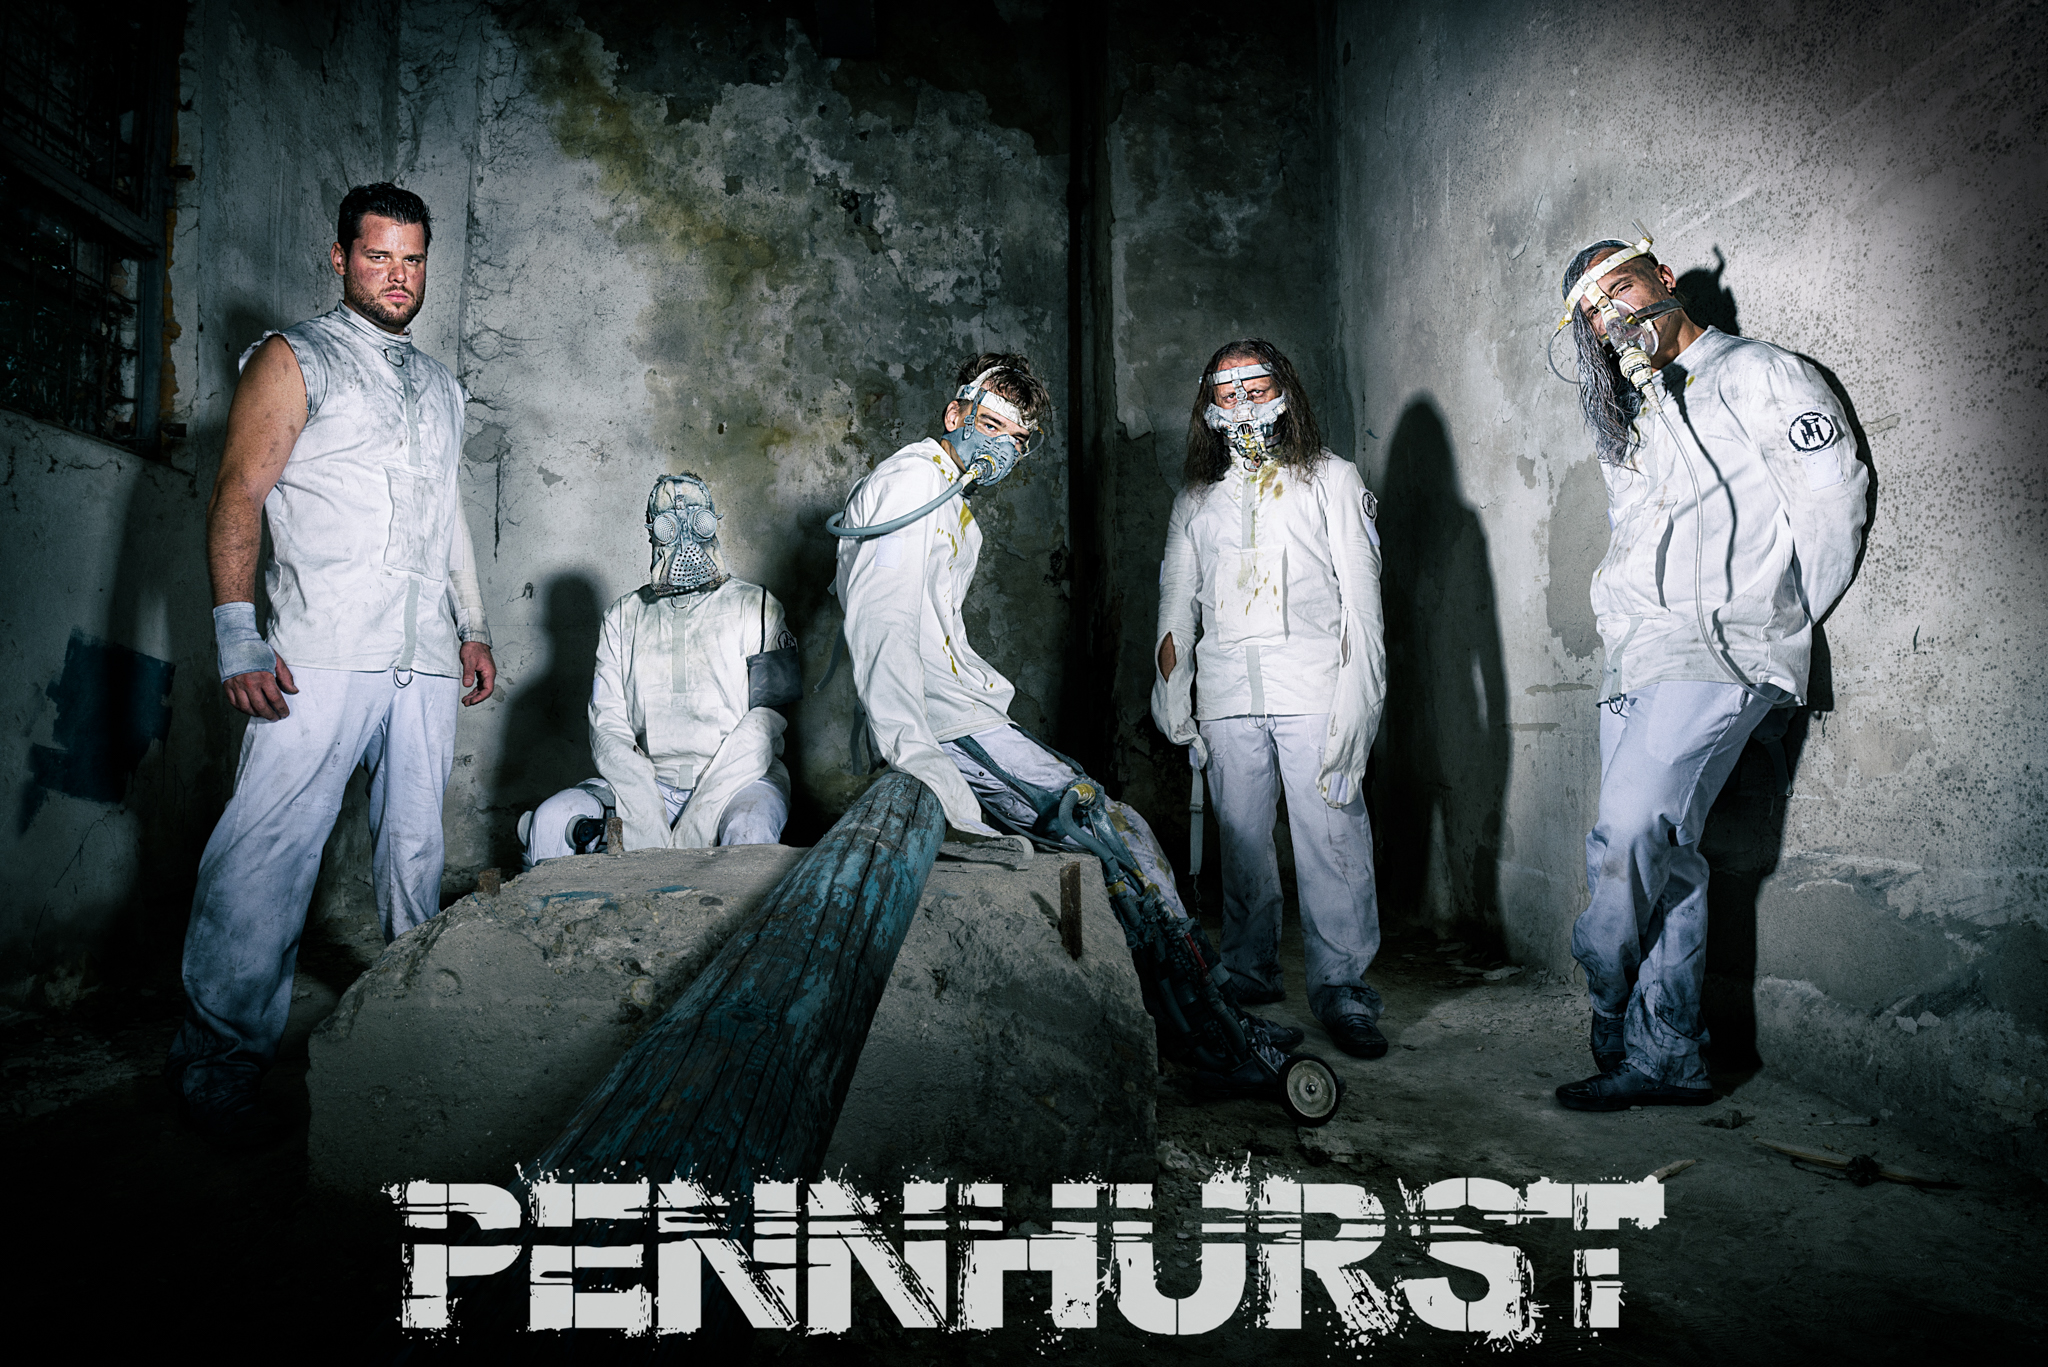 Pennhurst discount coupons